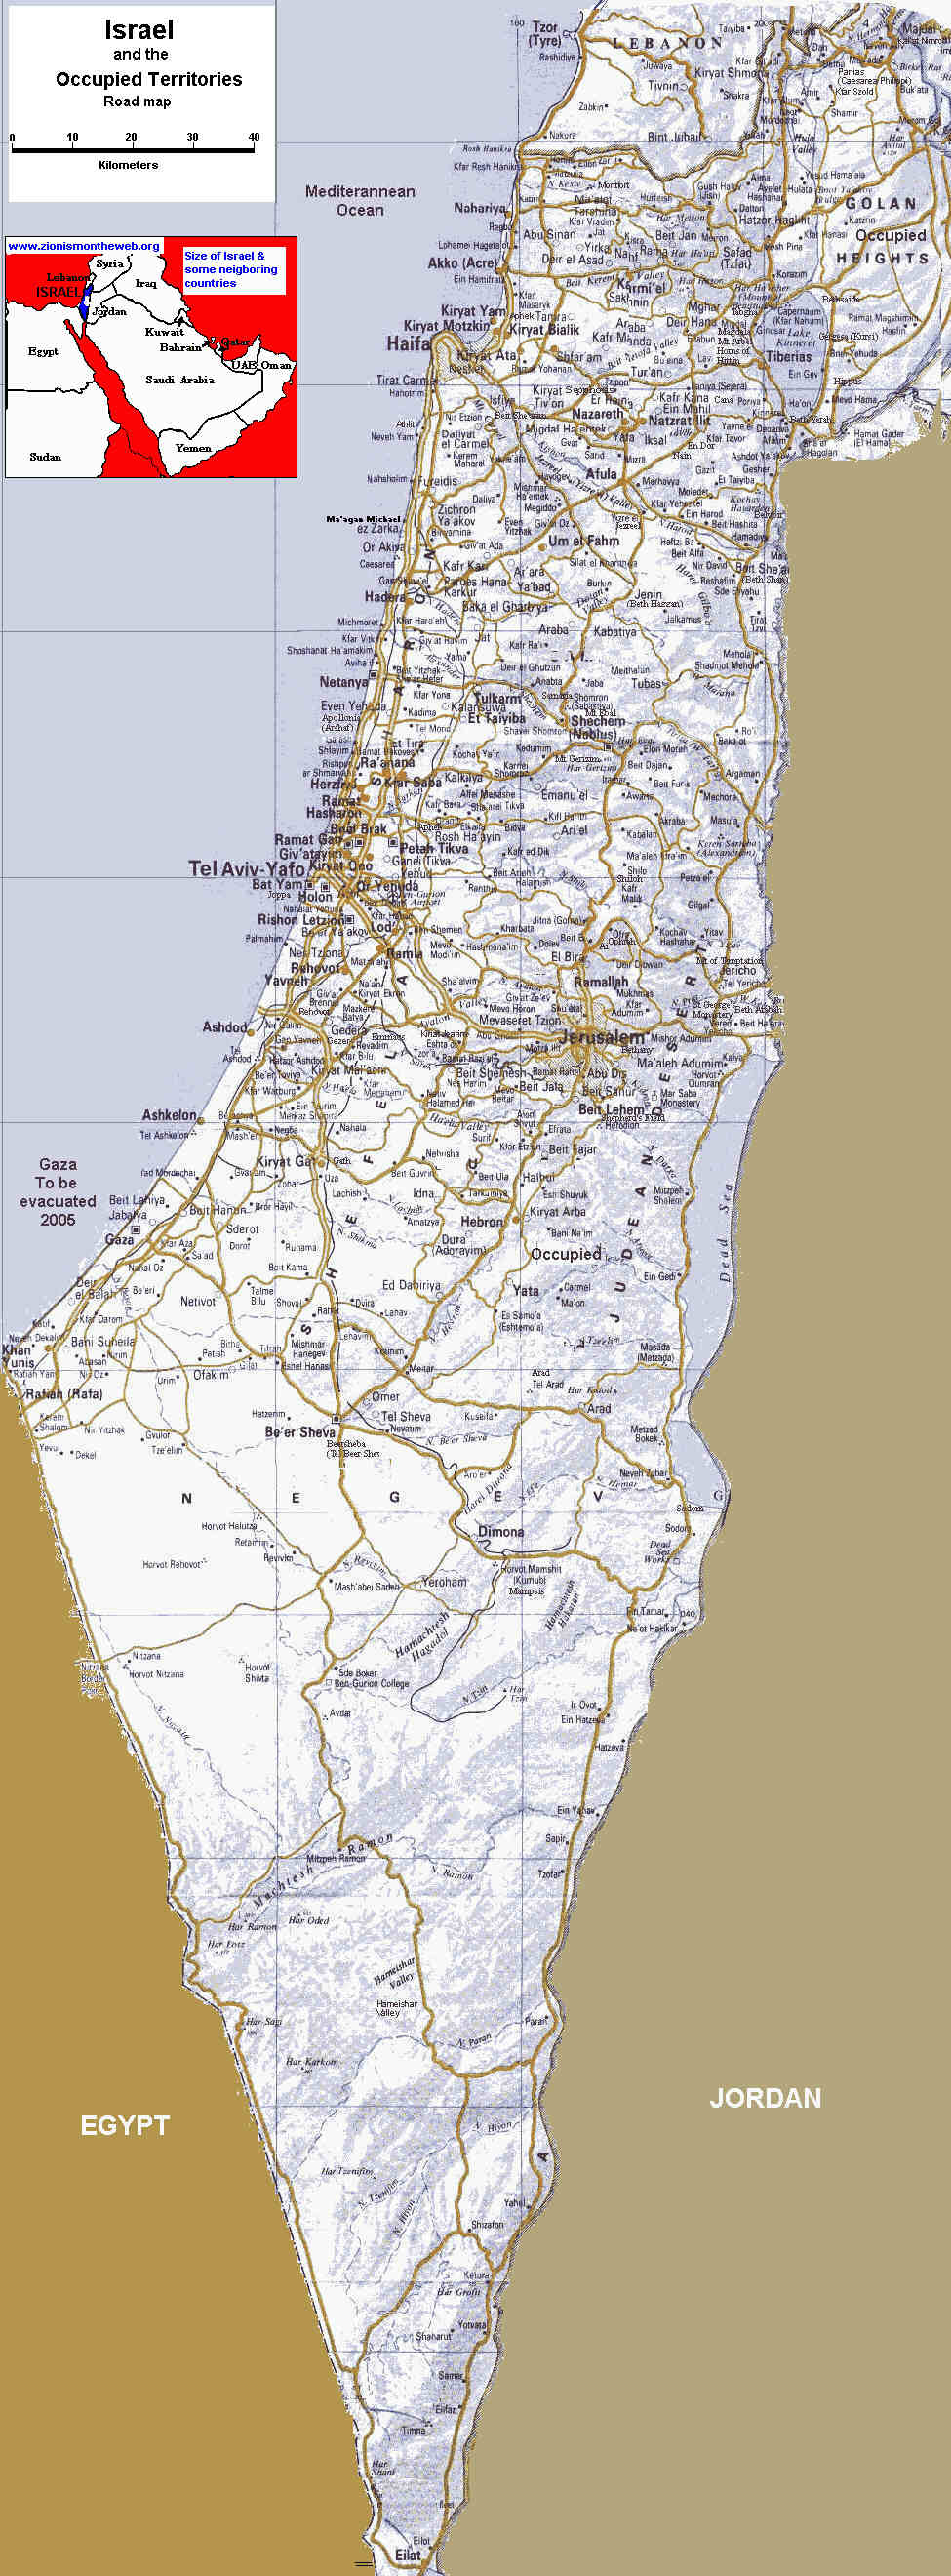 Detailed roadmap of Israel and occupied territories (Palestinian and Syrian Golan Heights)